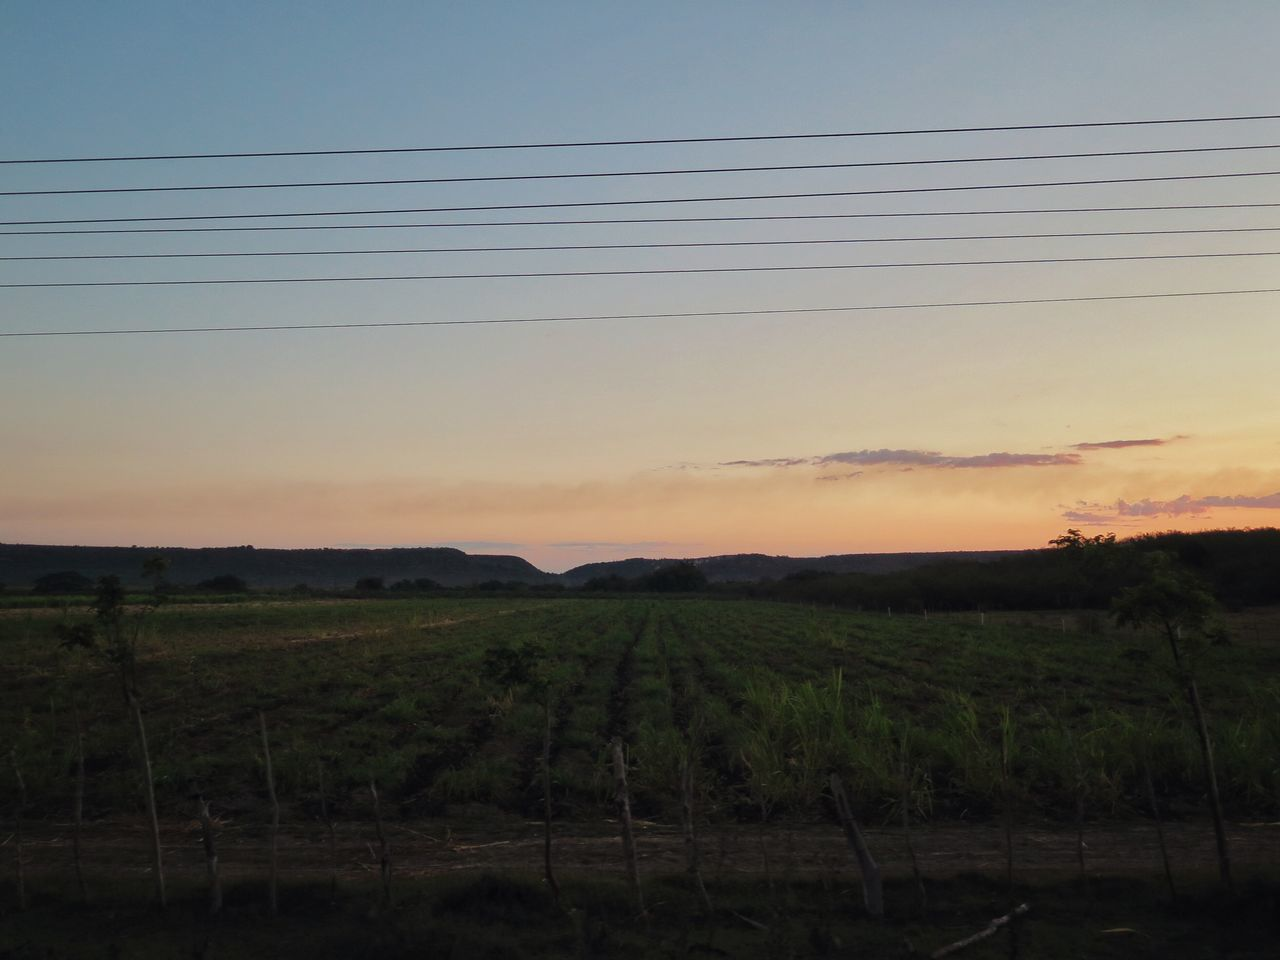 sunset, field, nature, tranquility, scenics, landscape, tranquil scene, agriculture, no people, beauty in nature, cable, outdoors, sky, rural scene, growth, electricity pylon, day